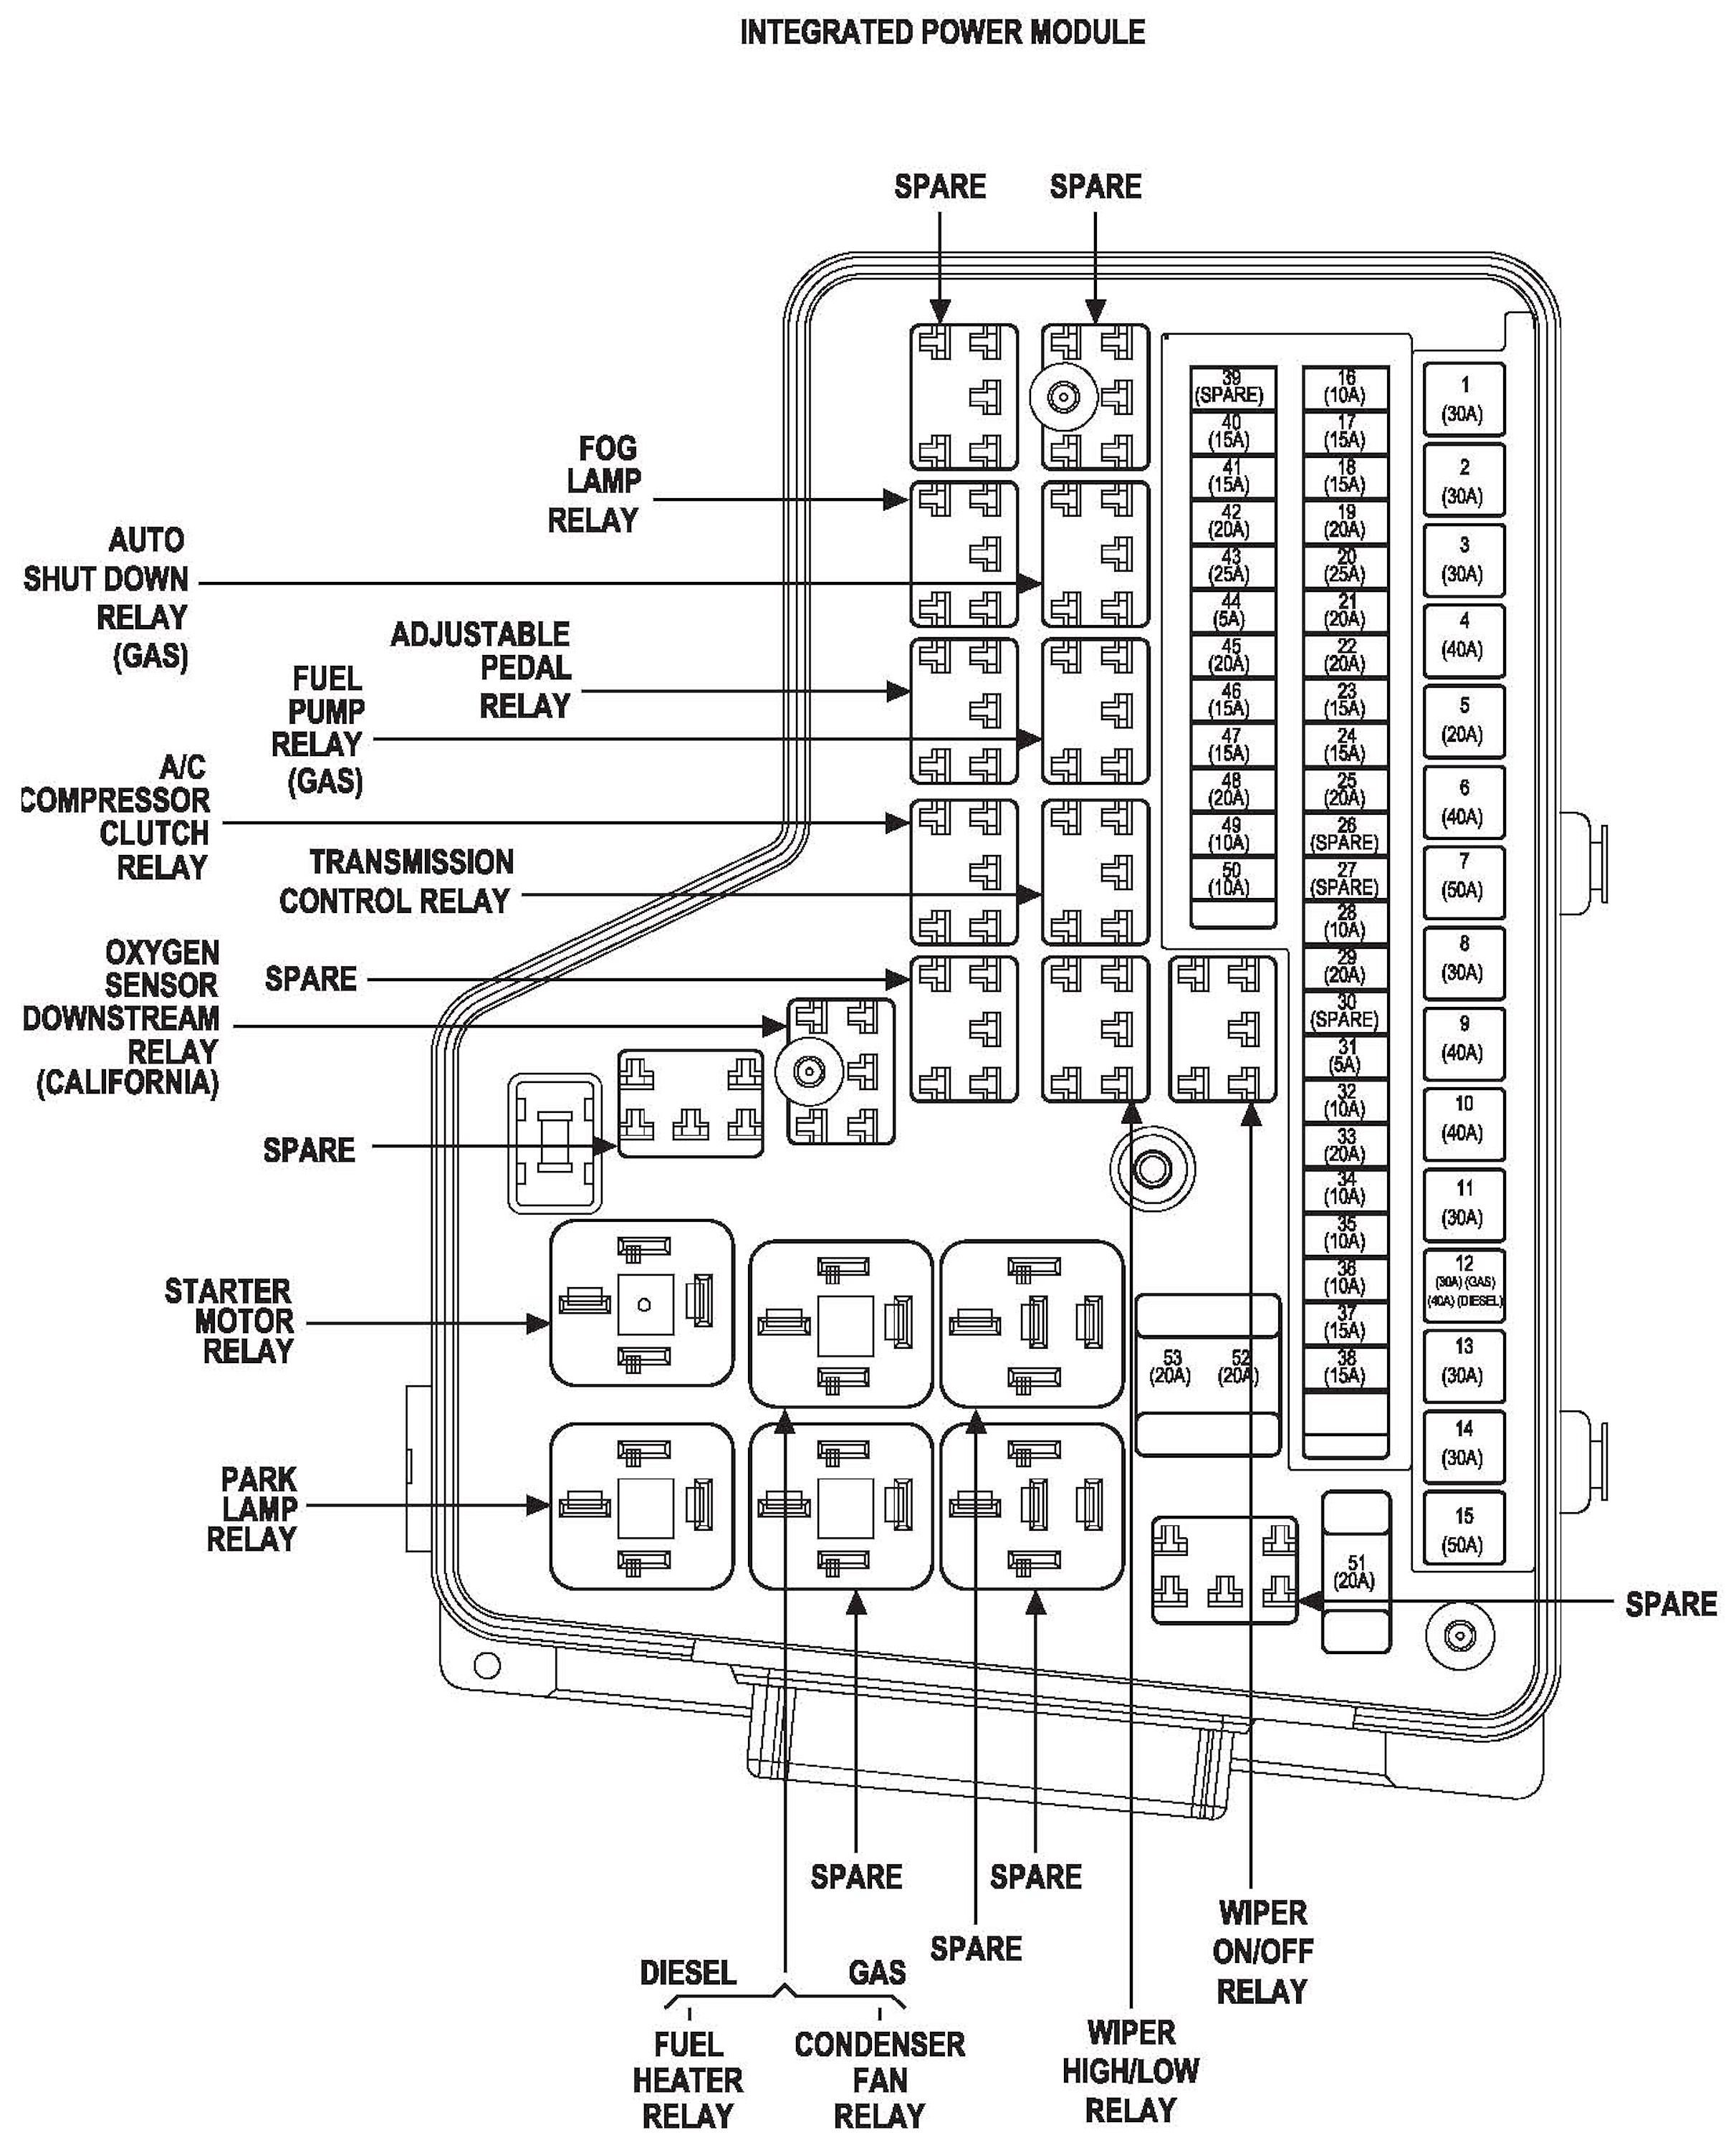 fuse box for 2010 dodge caravan wiring diagram database. Black Bedroom Furniture Sets. Home Design Ideas